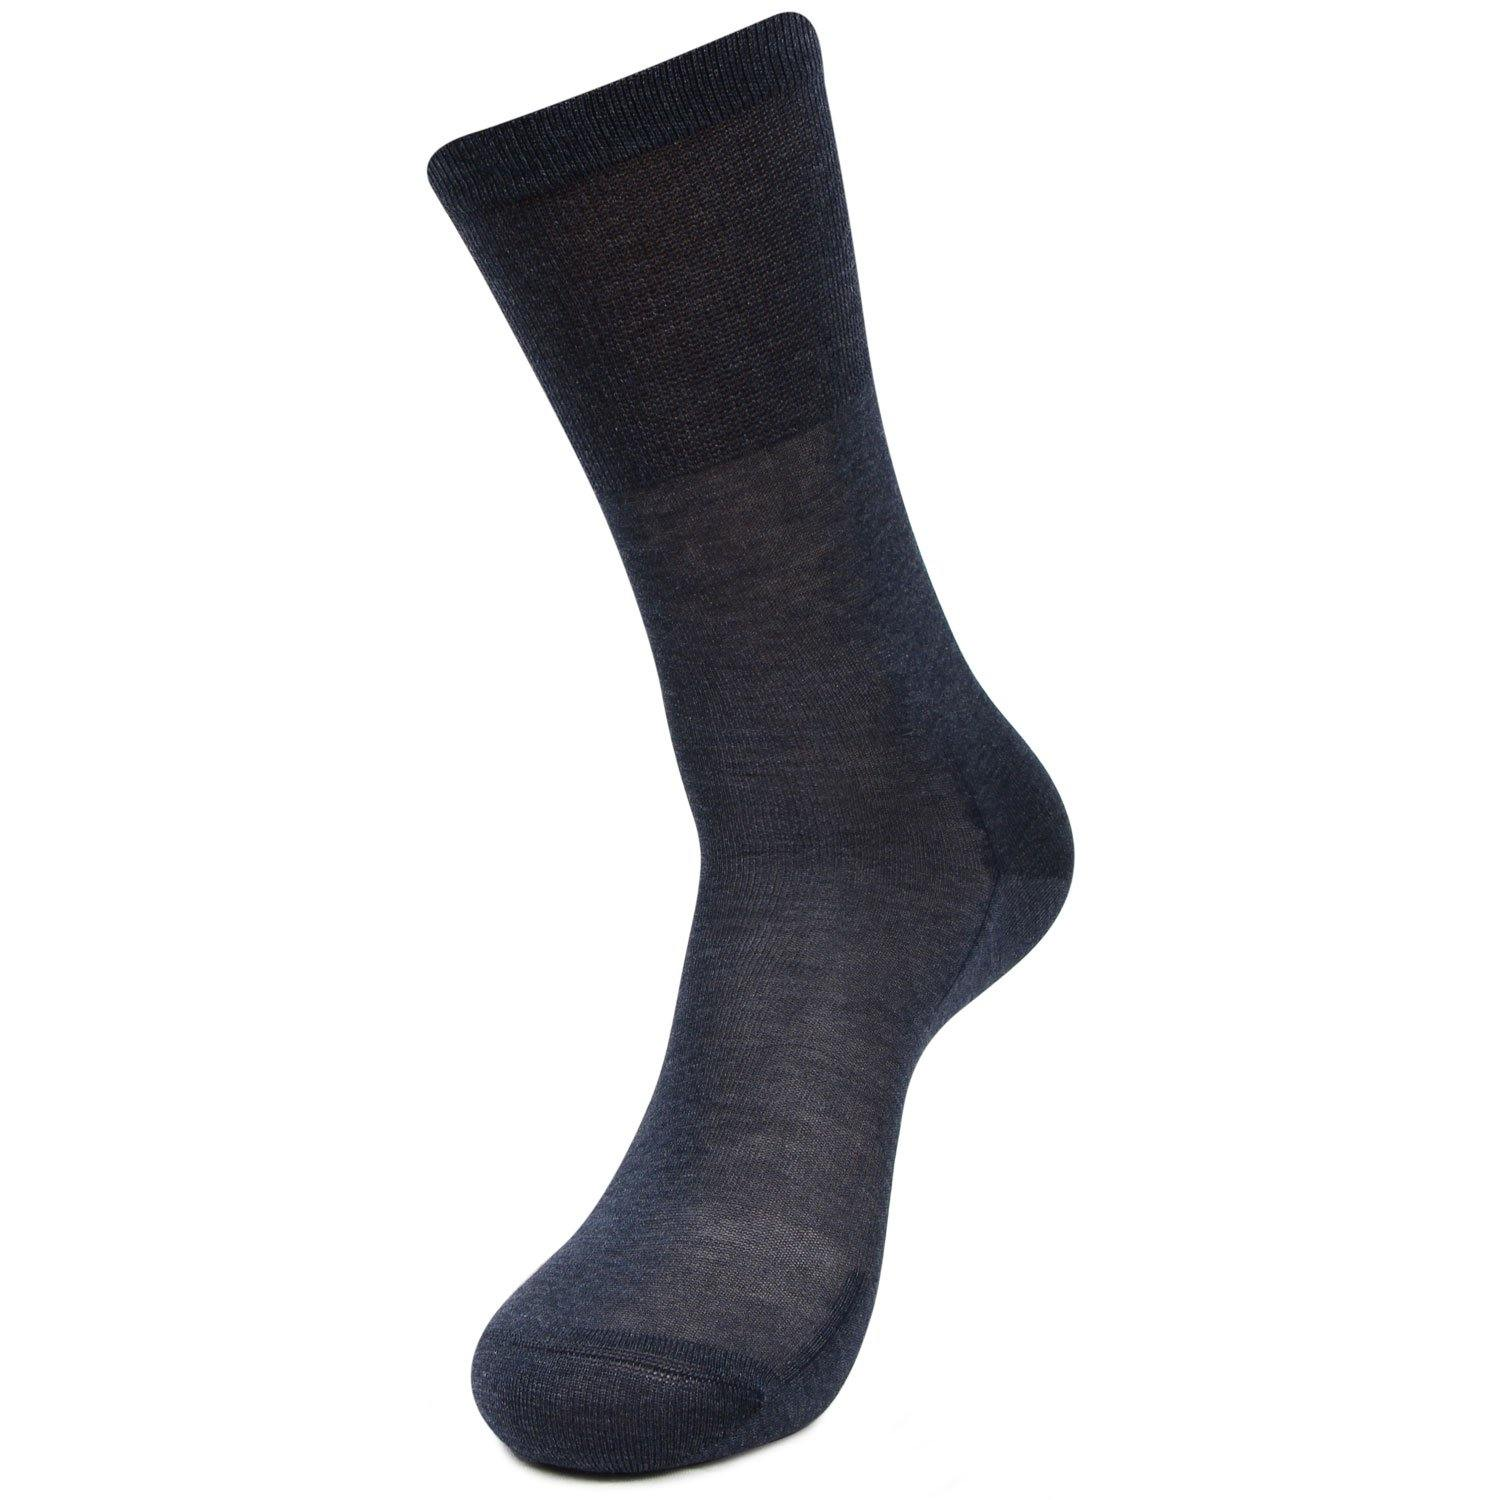 Men's Premium Signature Feather lite Embroidered Full Length Socks (Dark Grey)